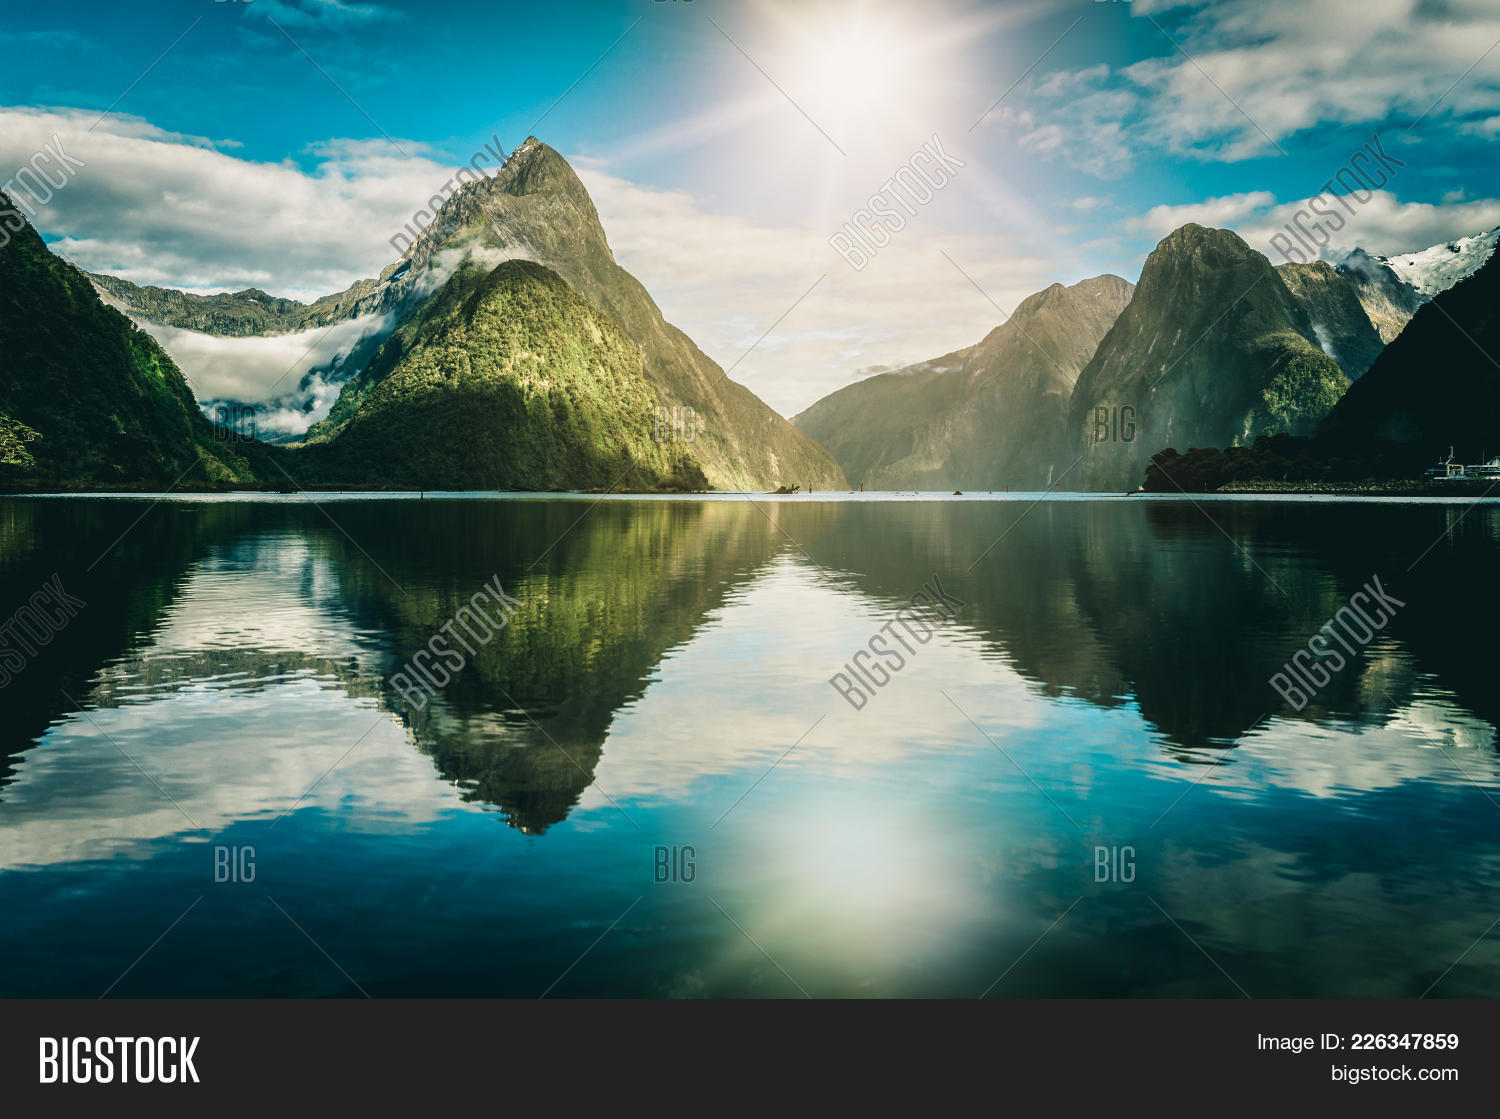 New milford sound zealand powerpoint template new milford sound your text toneelgroepblik Choice Image